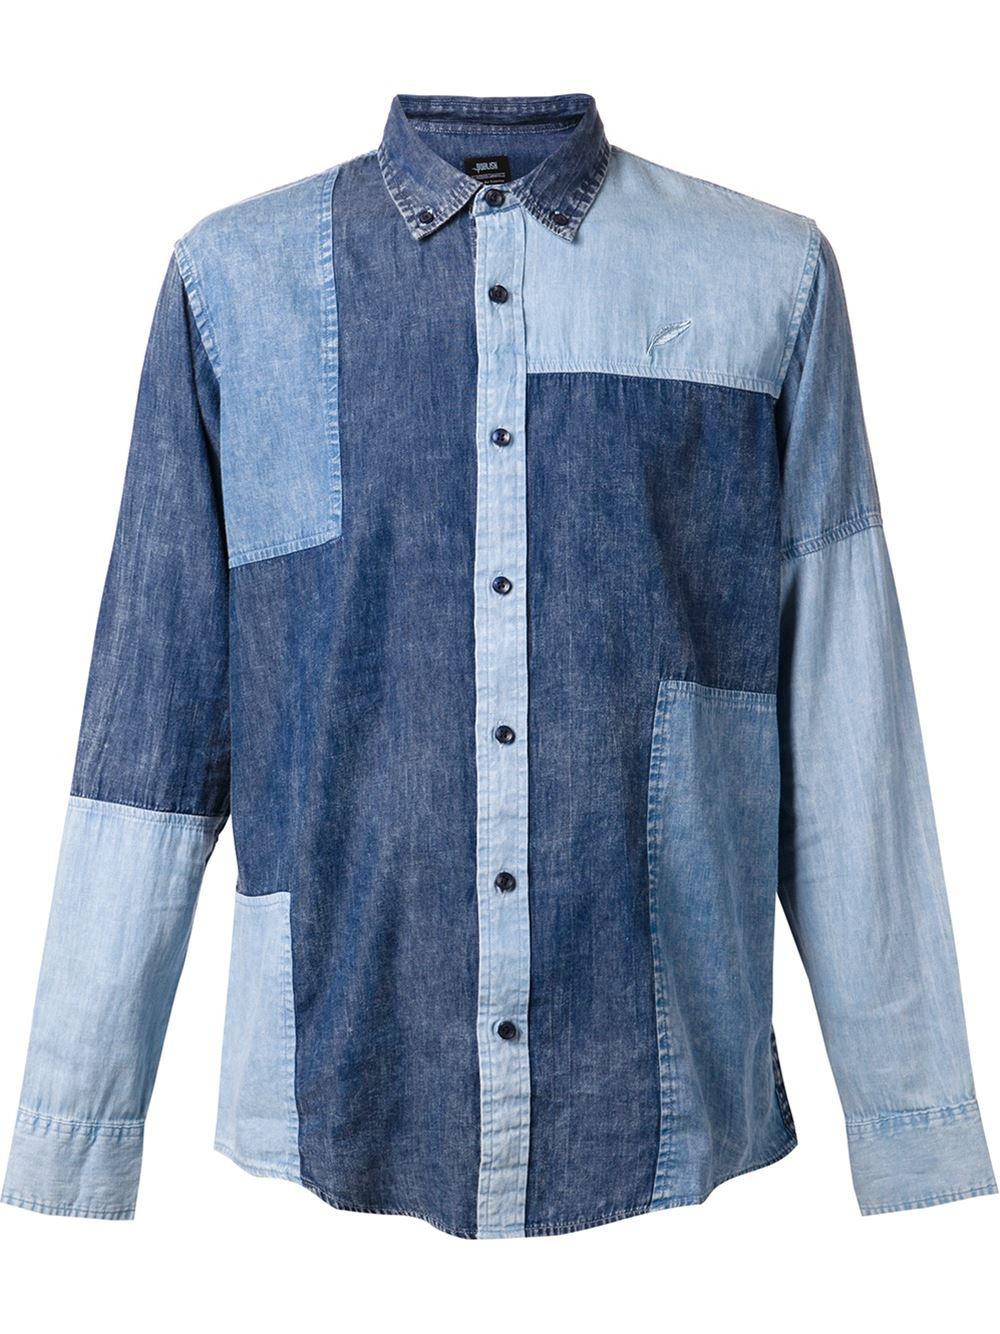 Lyst Timberland Patchwork Denim Shirt In Blue For Men